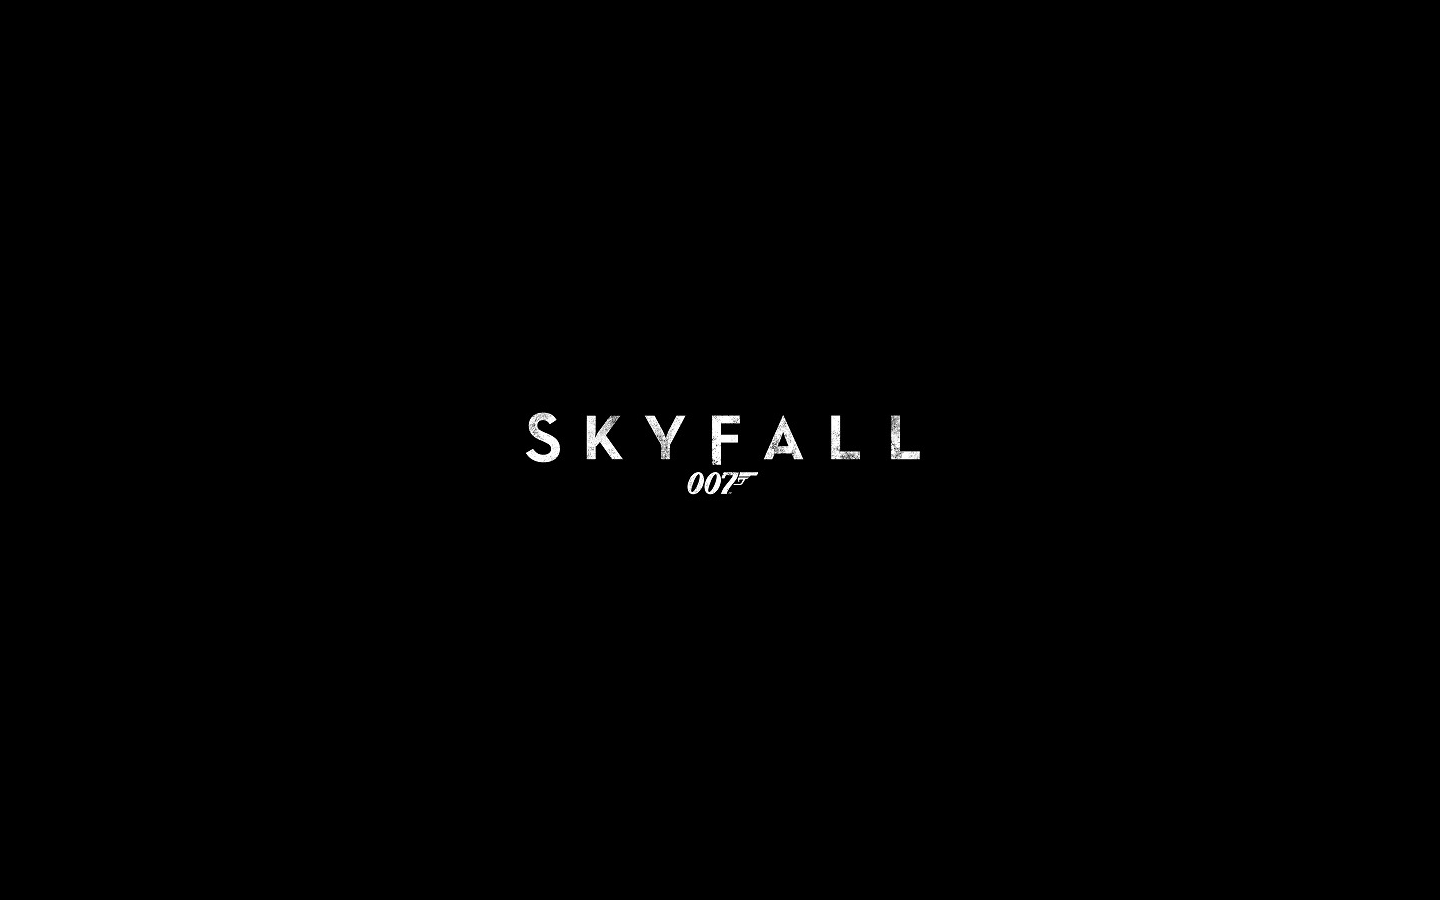 skyfall 007 wallpaper | my image